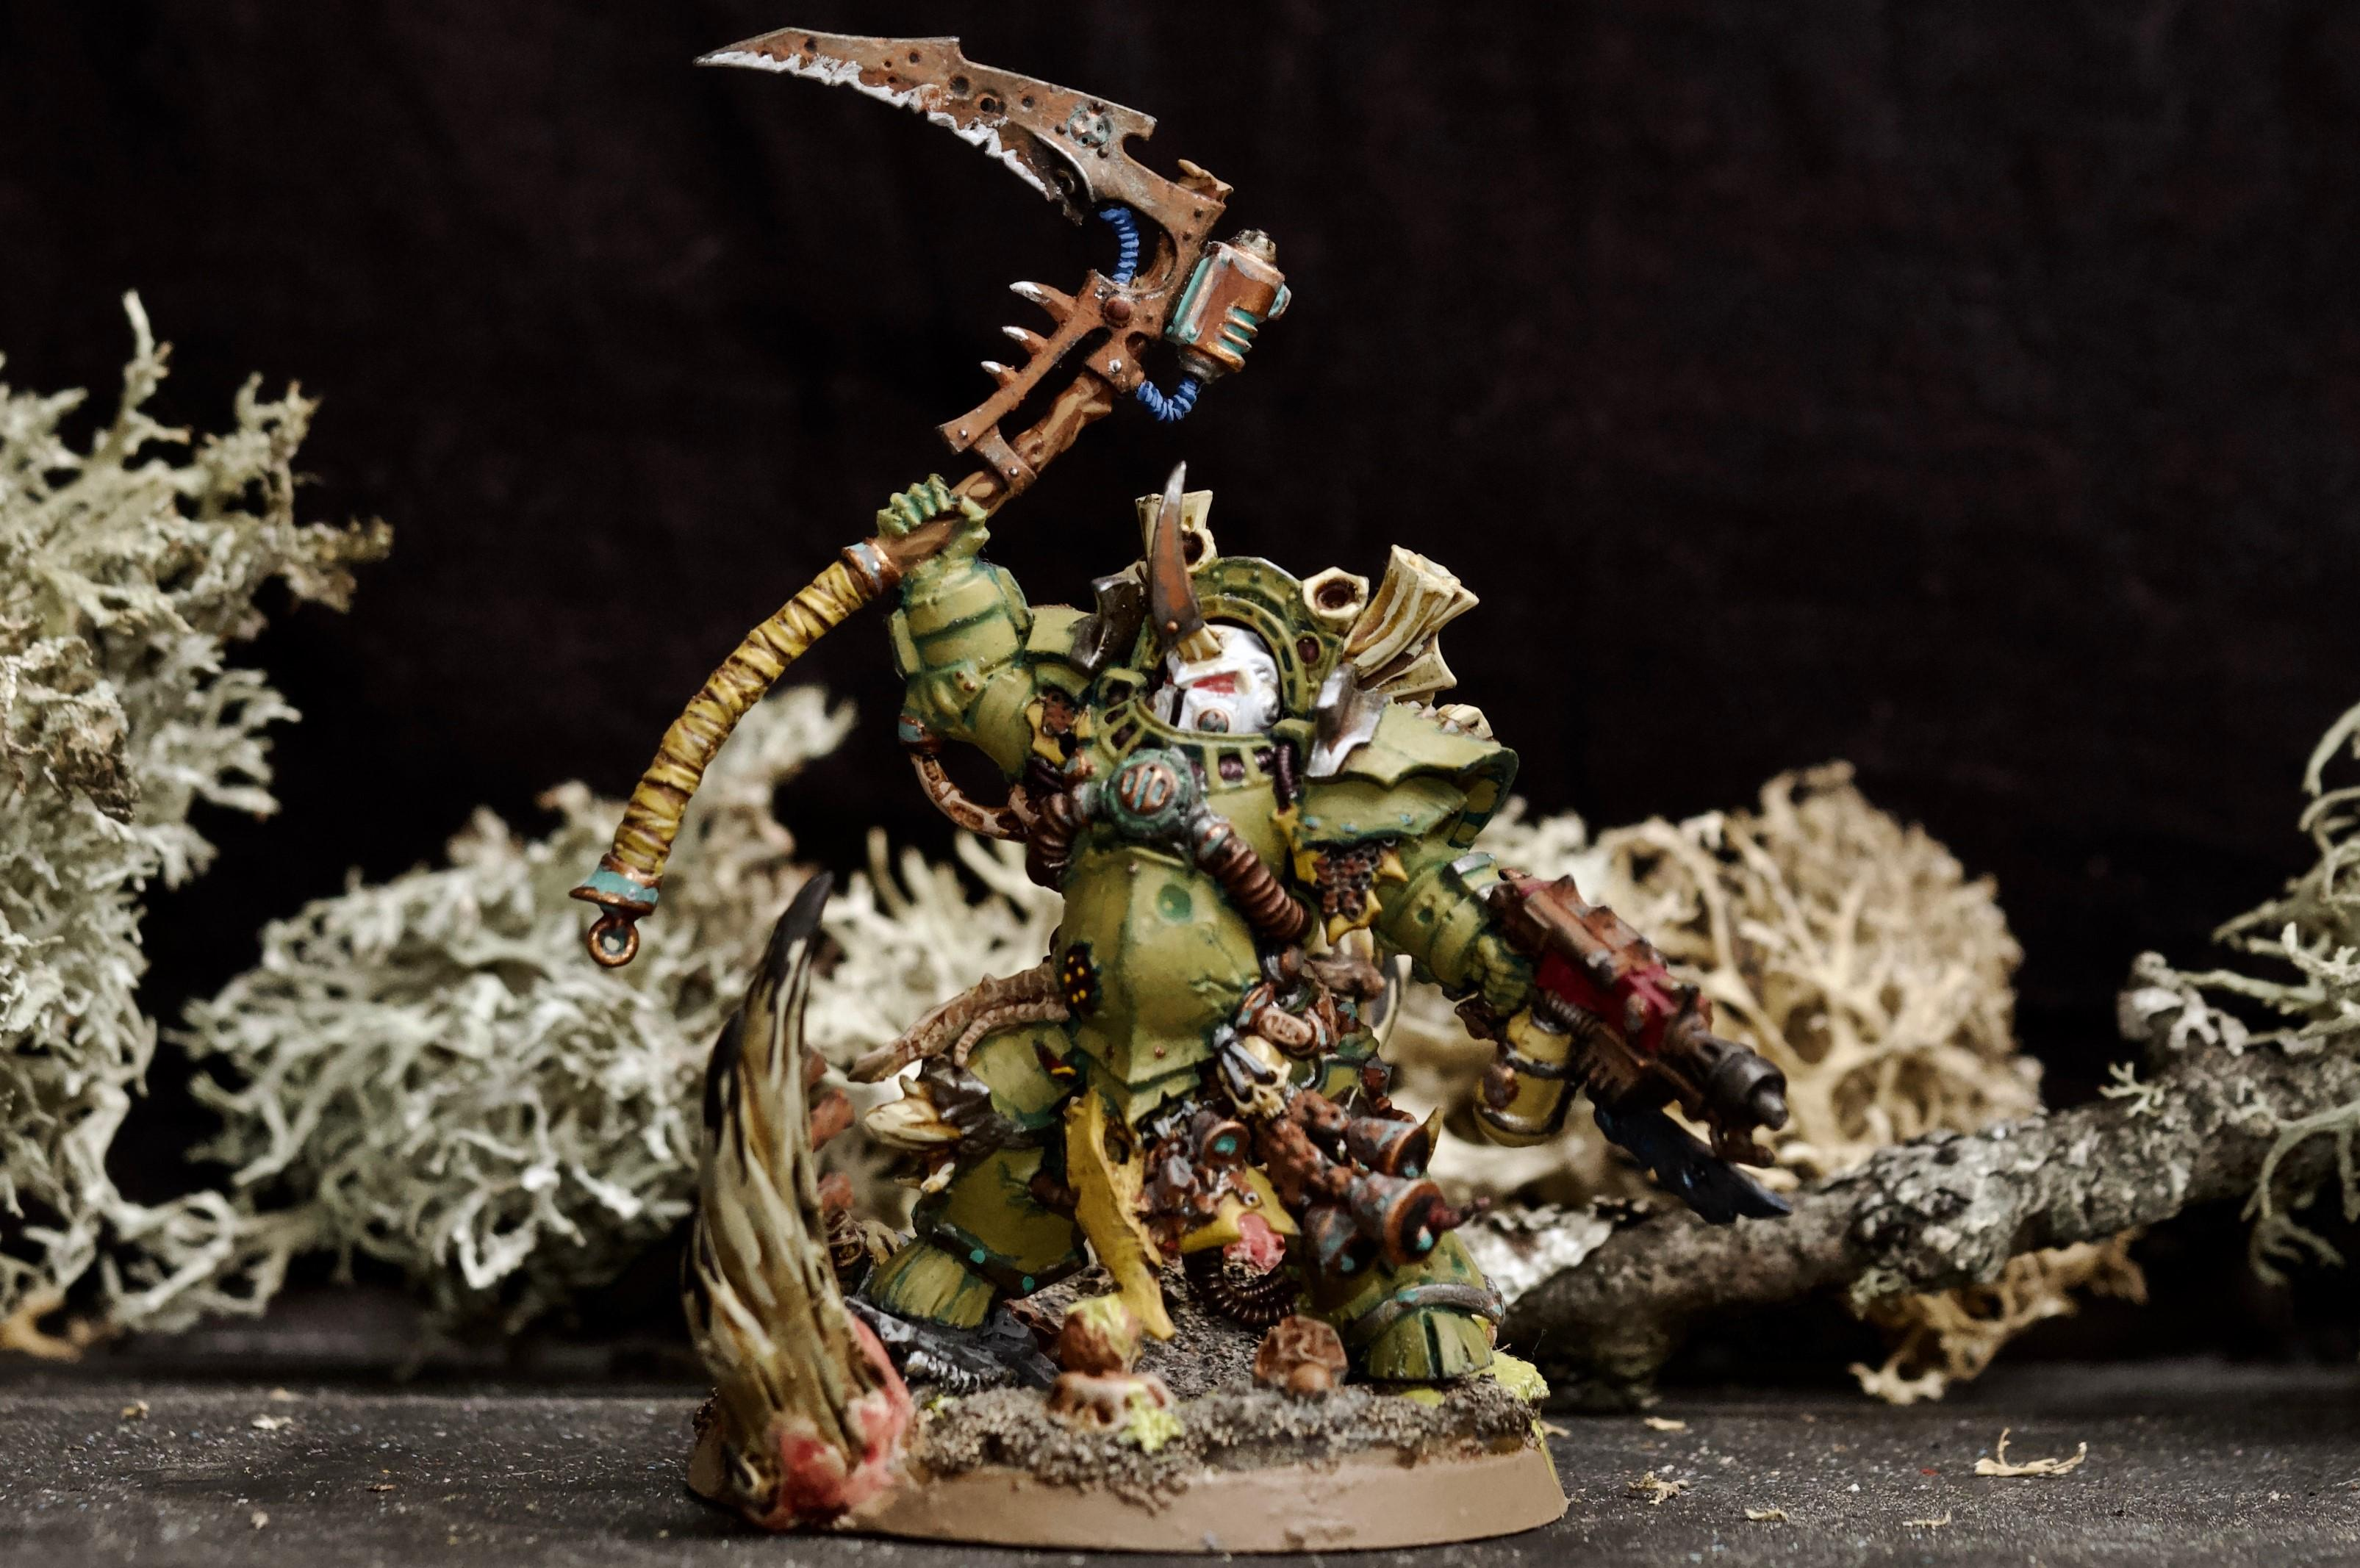 Awesome Photos, Blight, By Andrey Mishuta, Chaos, Chaos Space Marines, Combiweapon, Conversion, Death Guard, Decay, Destroyer Hive, Heretic Astartes, M.a.k., Nurgle, Plague Marines, Scythe, Typhus, Warhammer 40,000